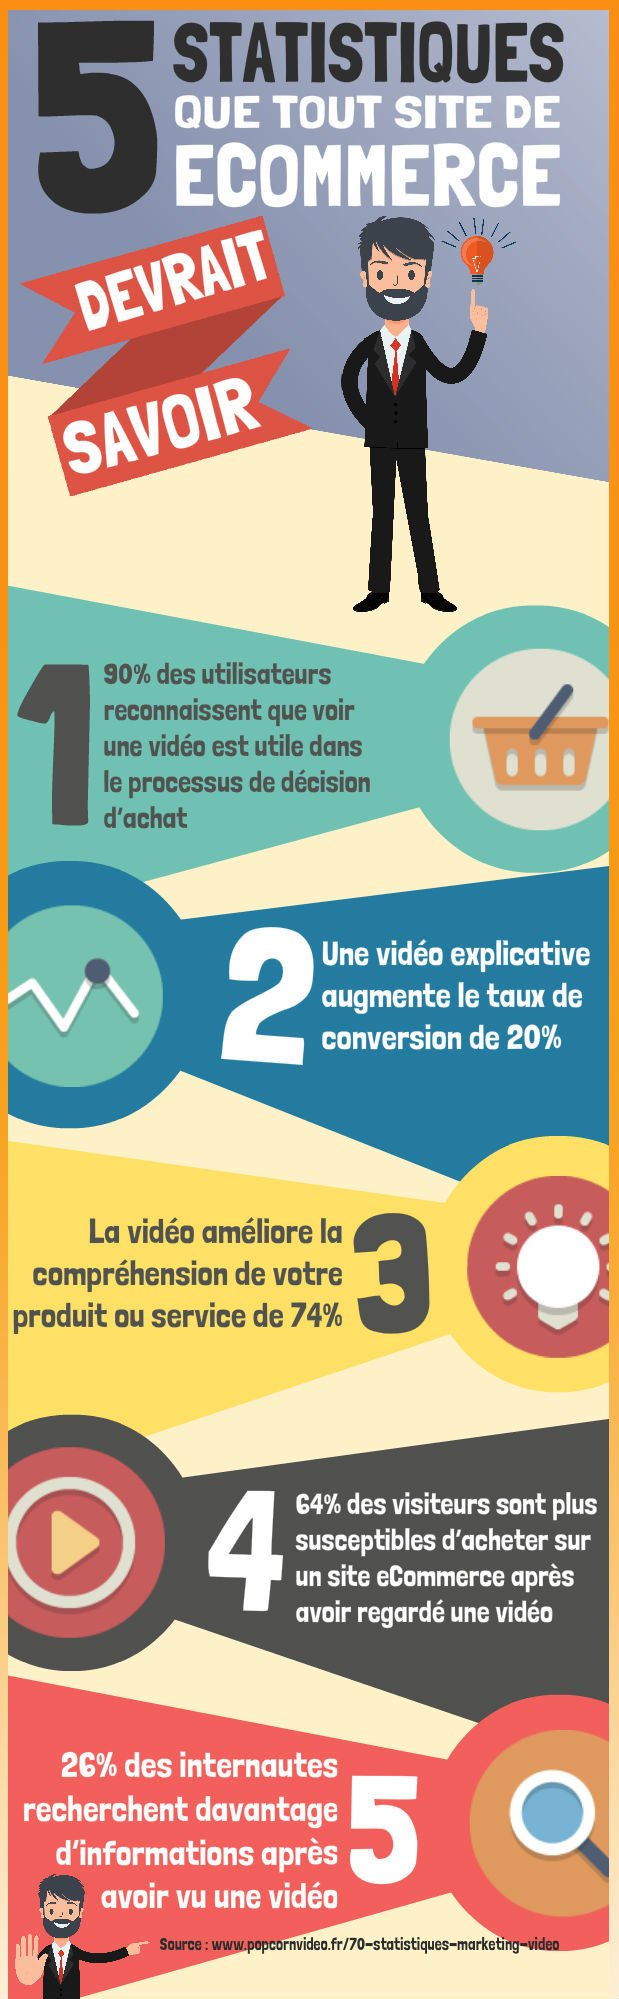 infographie-5-choses-ecommerce